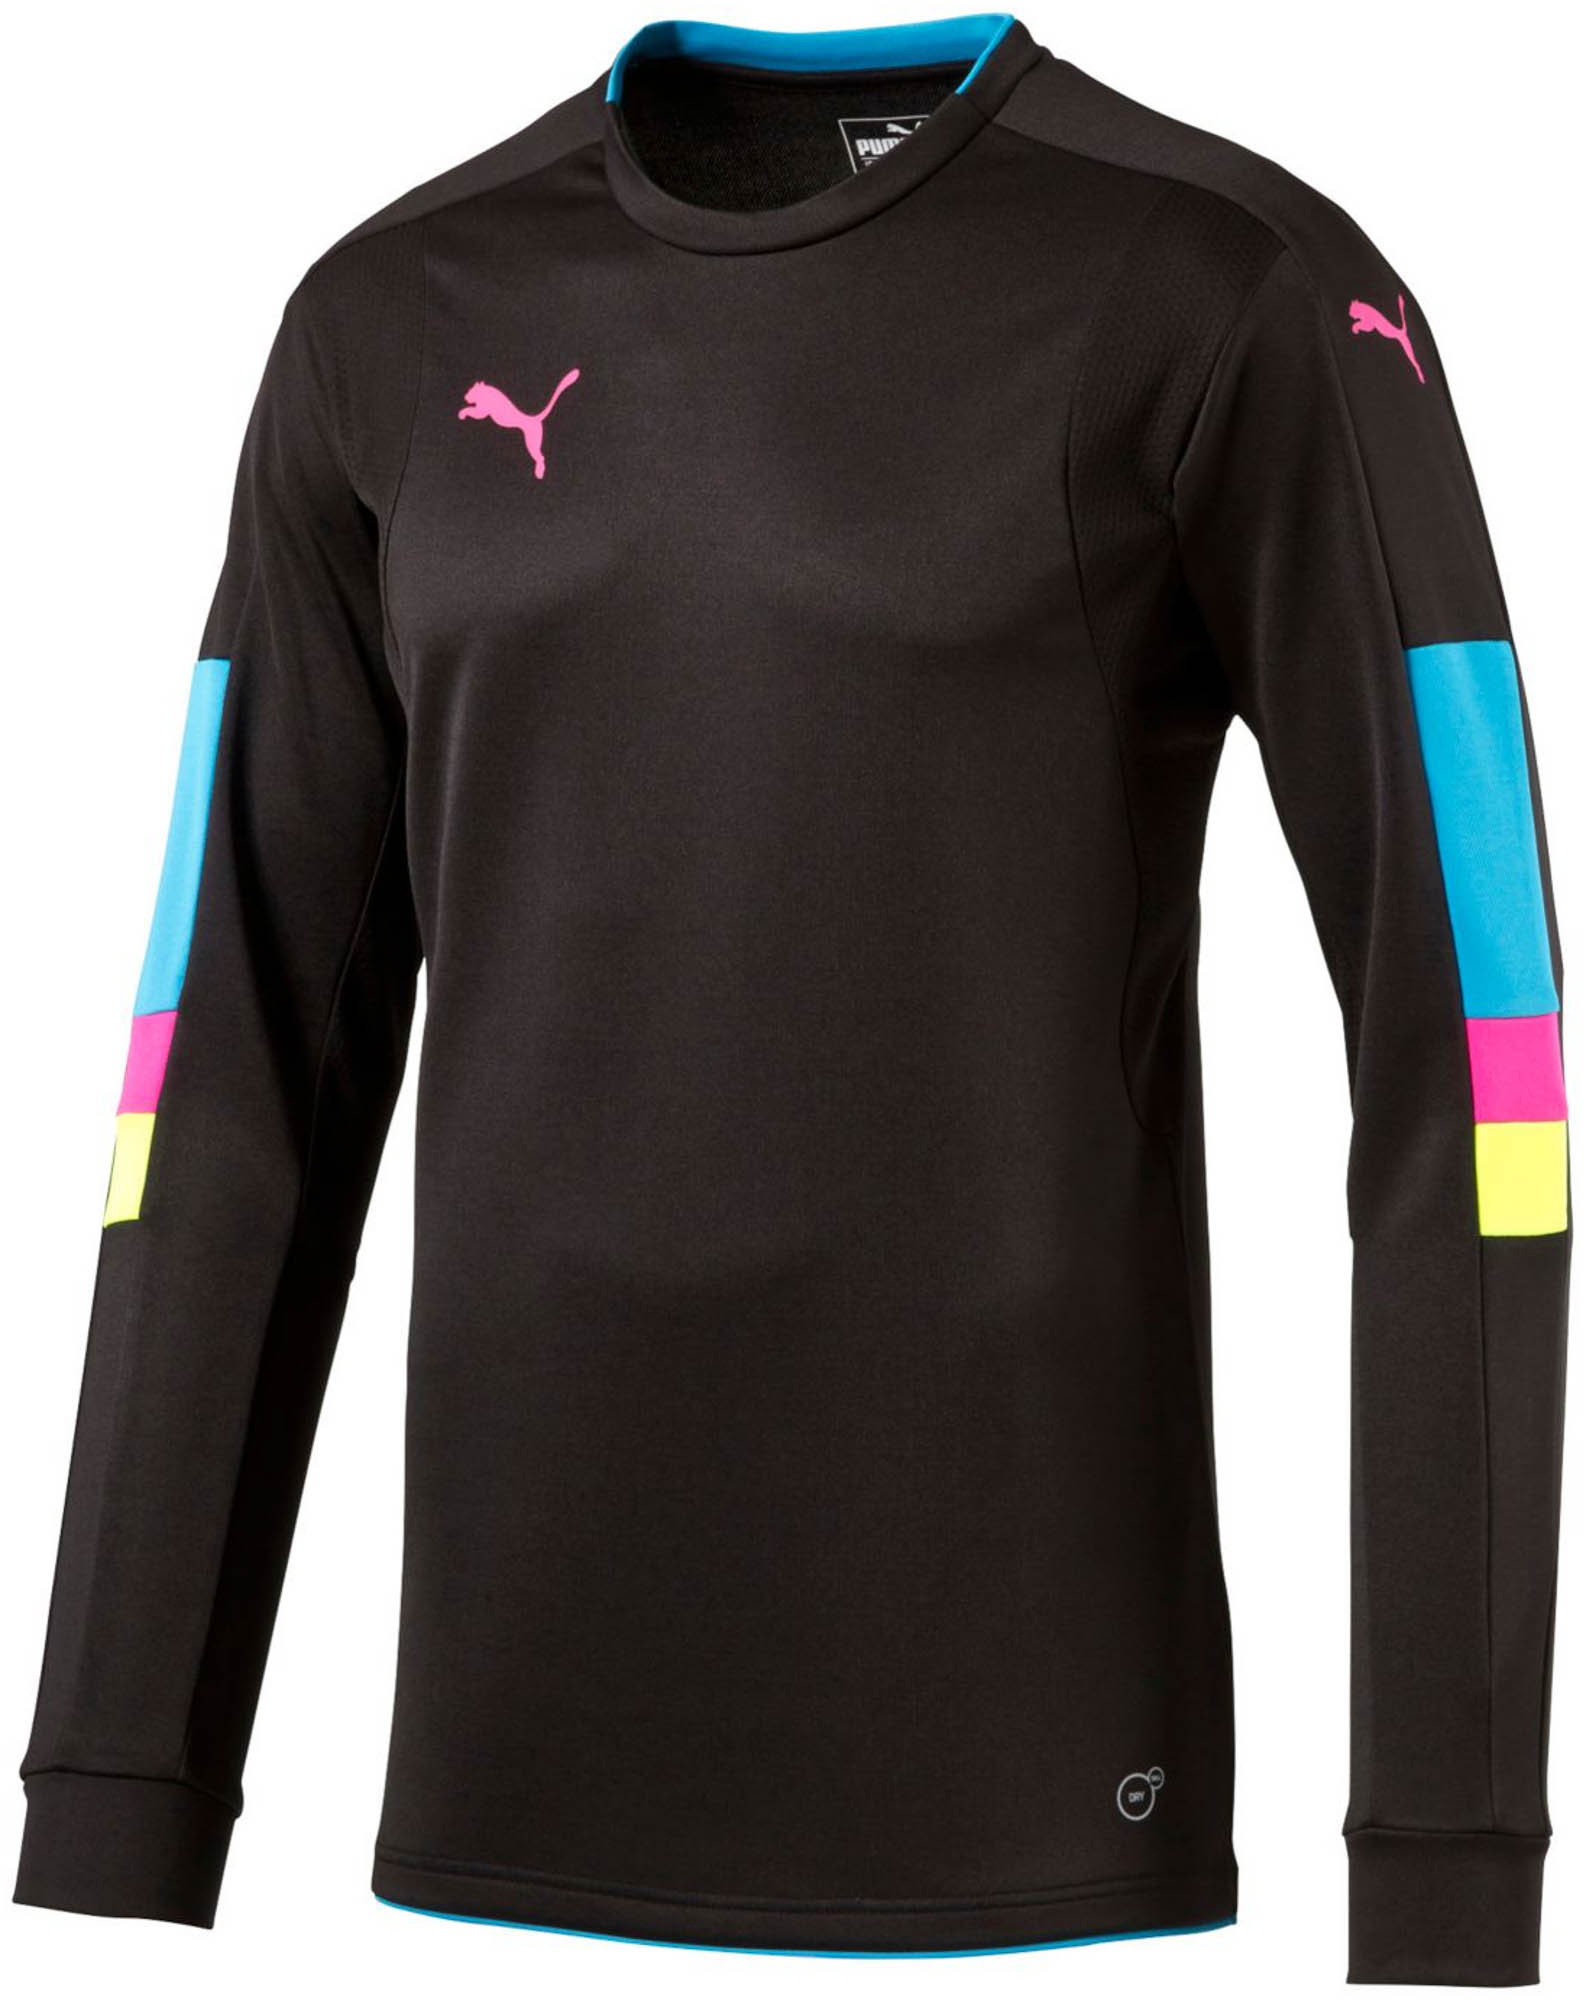 de97491e539 Puma Tournament Goalie Jersey - Black Goalkeeper Jersey